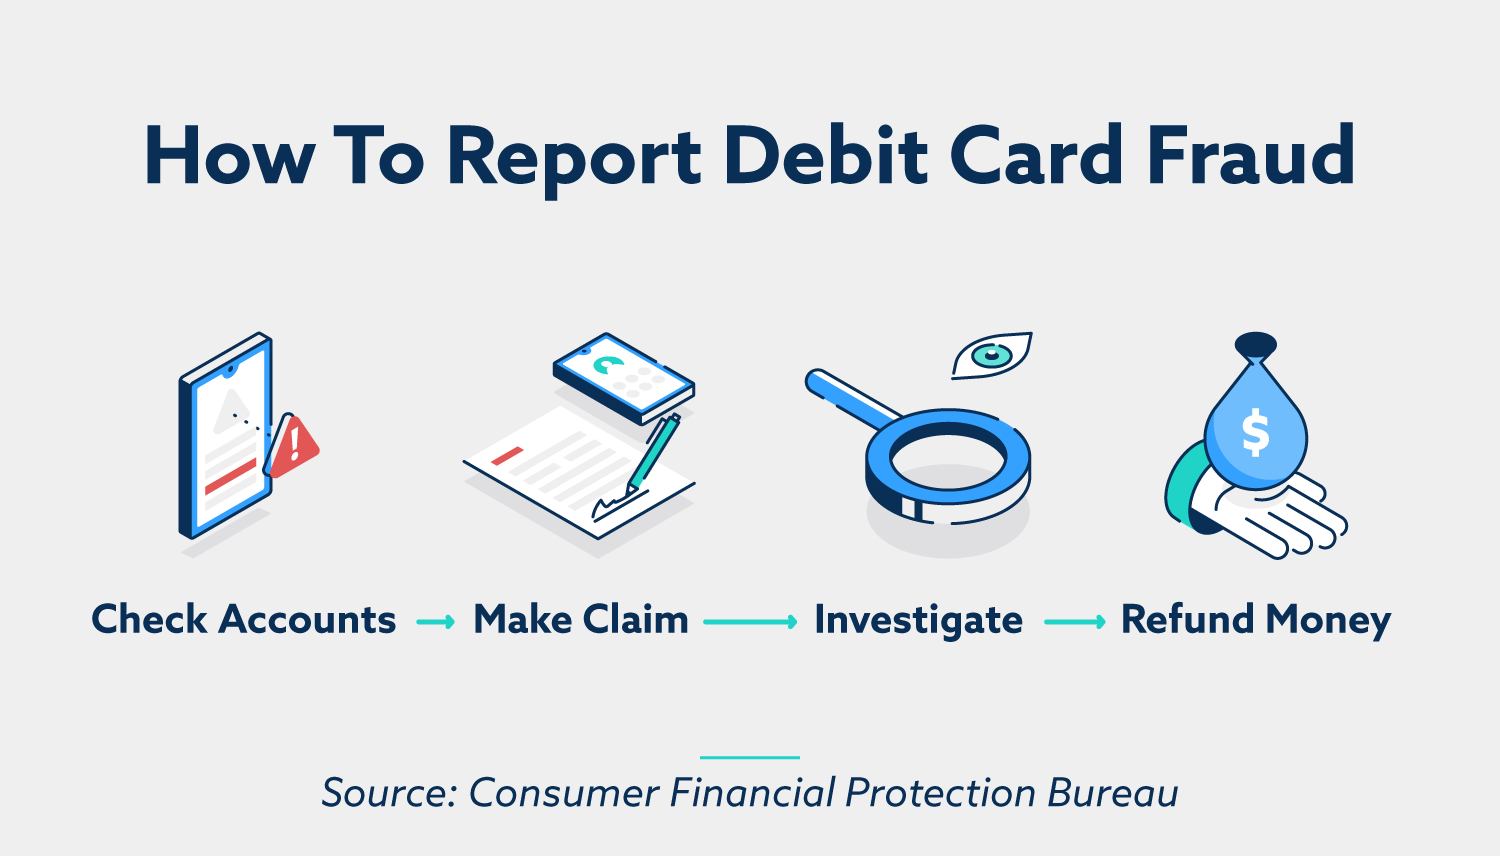 How to report debit card fraud